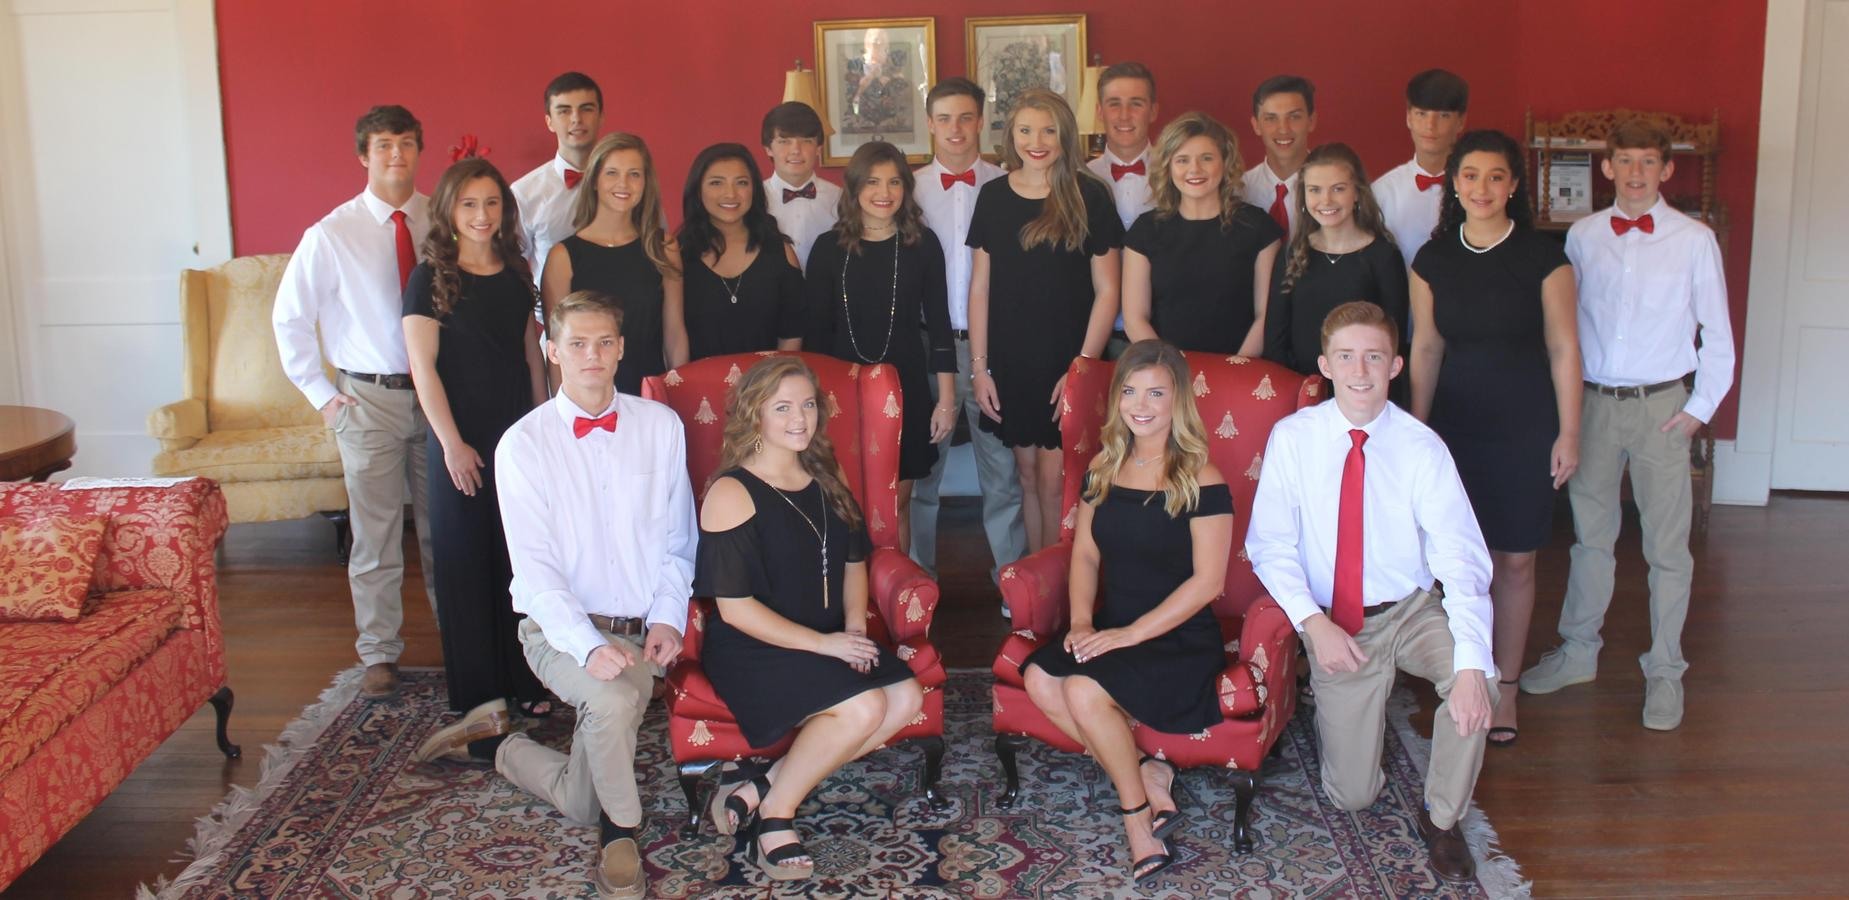 2018 Homecoming Court